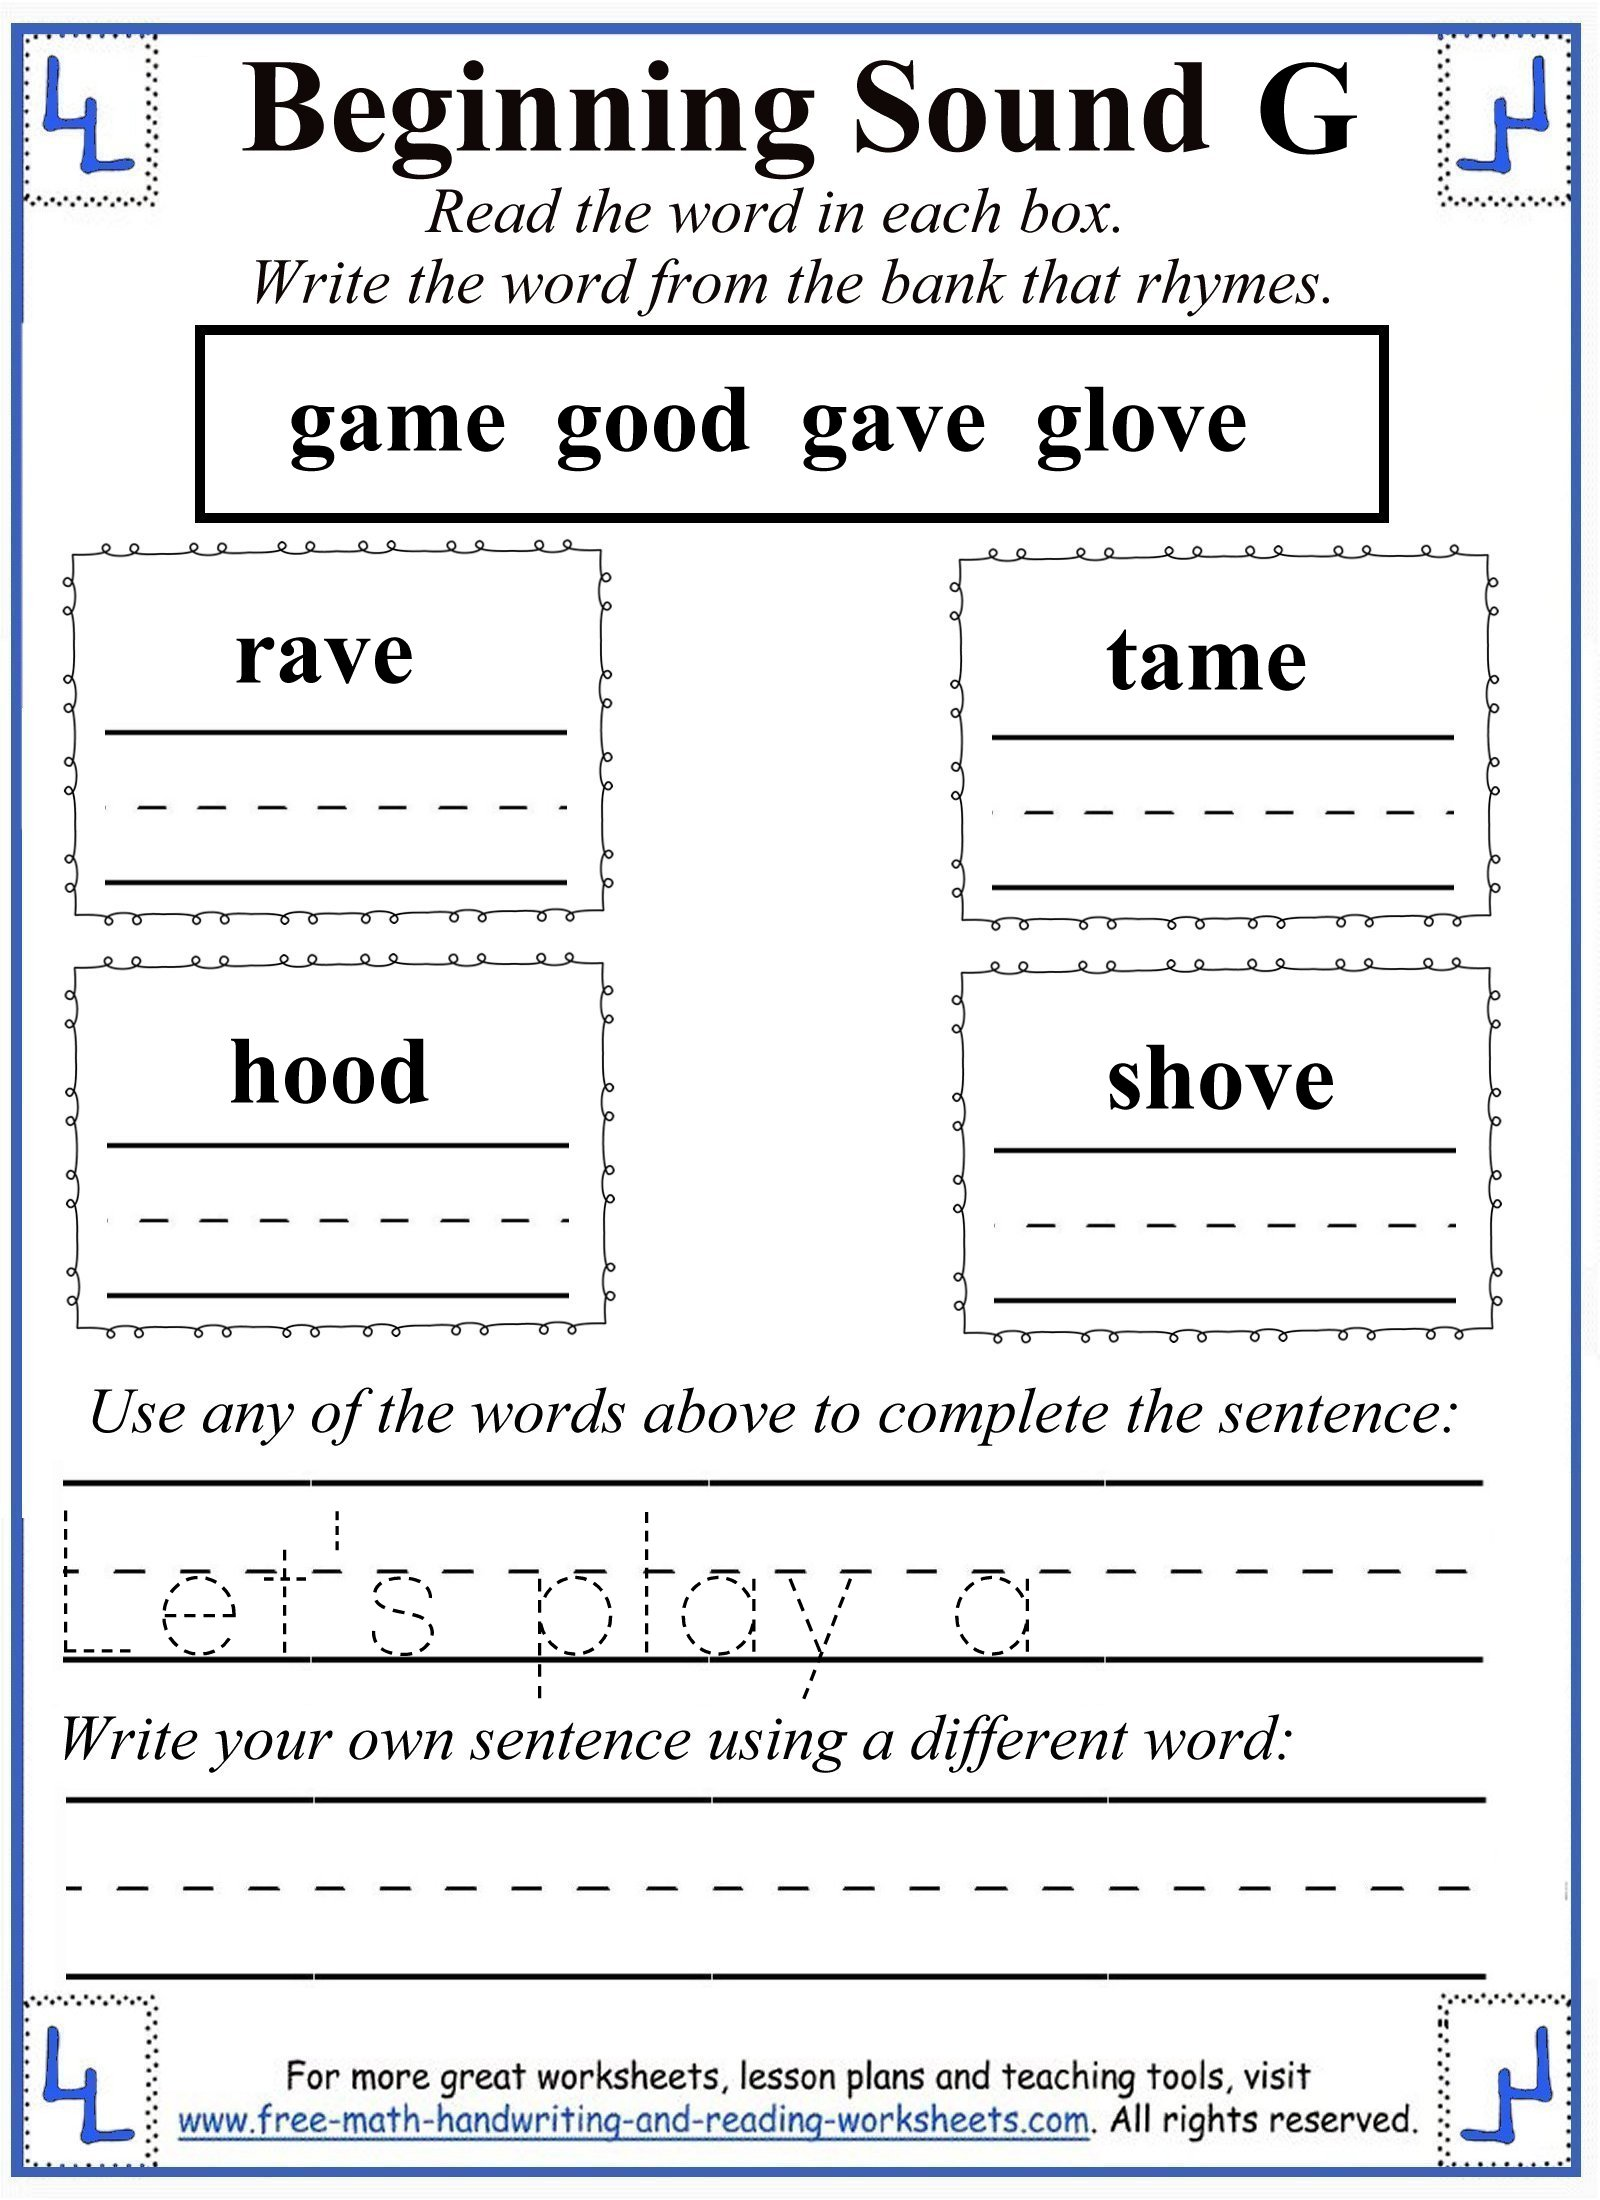 Worksheets Letter G Worksheets For Kindergarten letter g worksheet activities 4